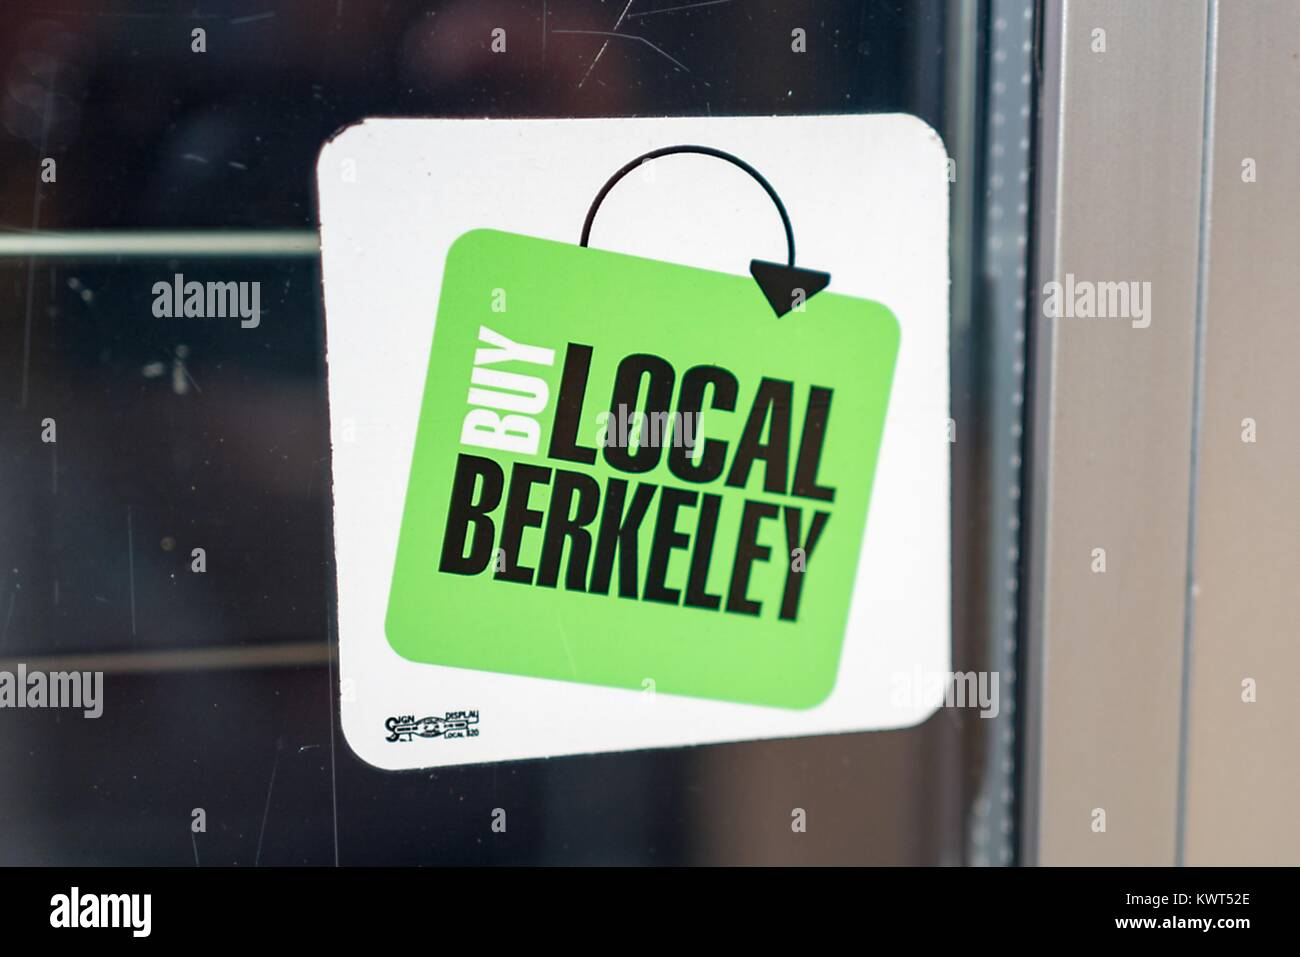 Decal on store window reading Buy Local Berkeley, encouraging visitors to make purchases from local small business - Stock Image